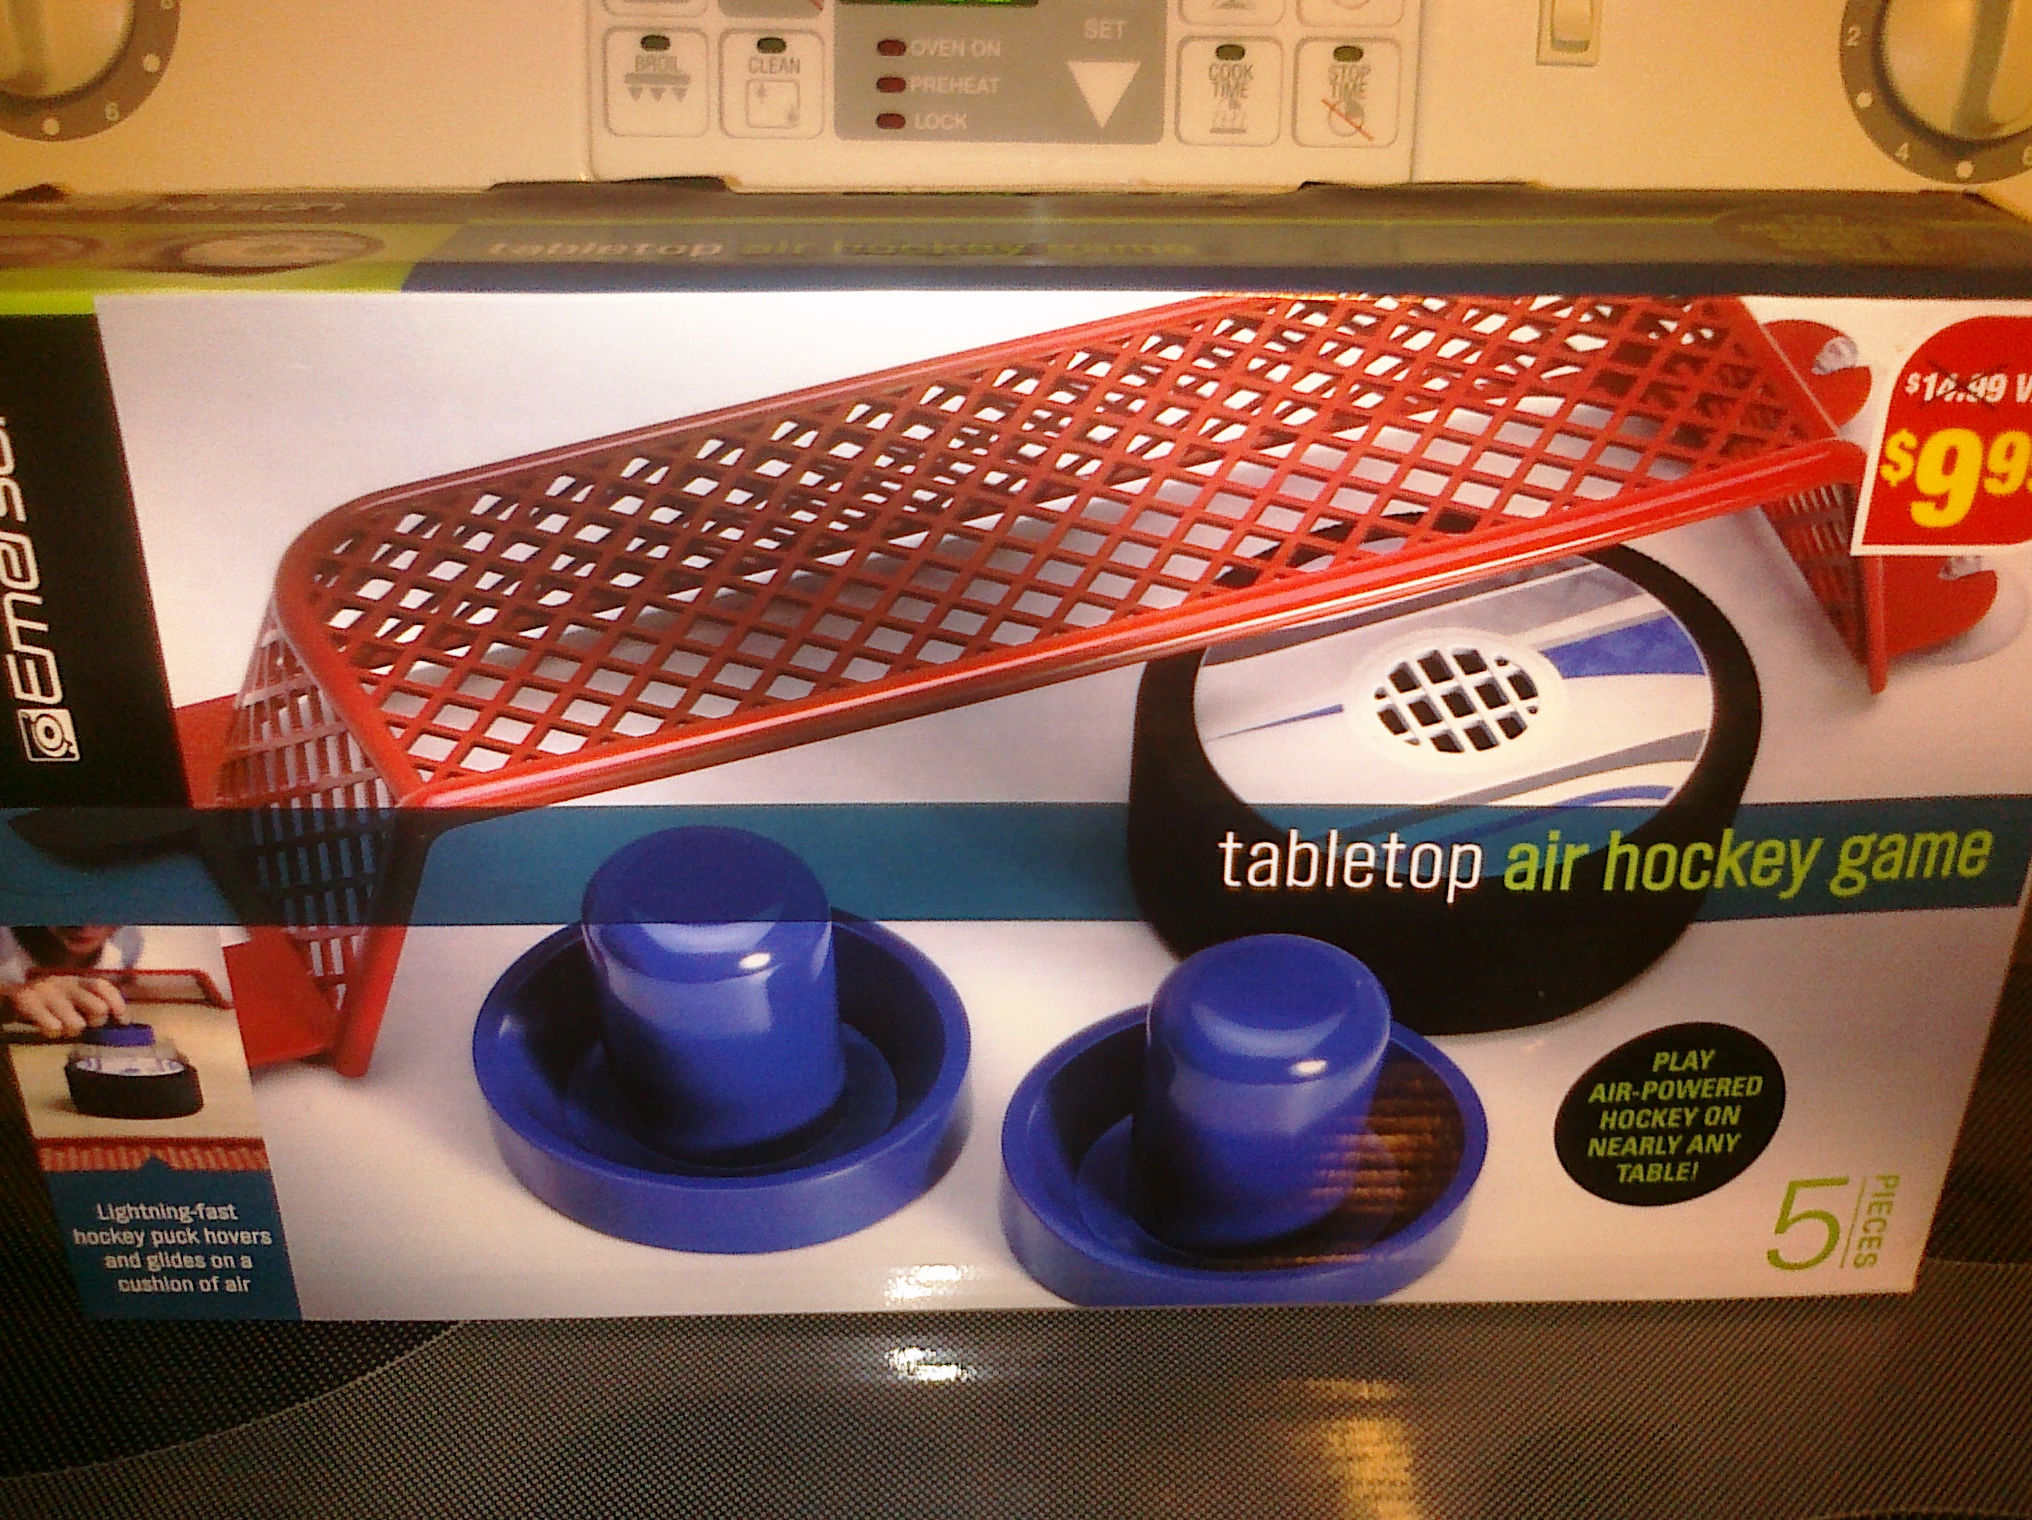 ... Tabletop Air Hockey Game. Cvs Skinny Cow Deal And Clearance Aholicsavers